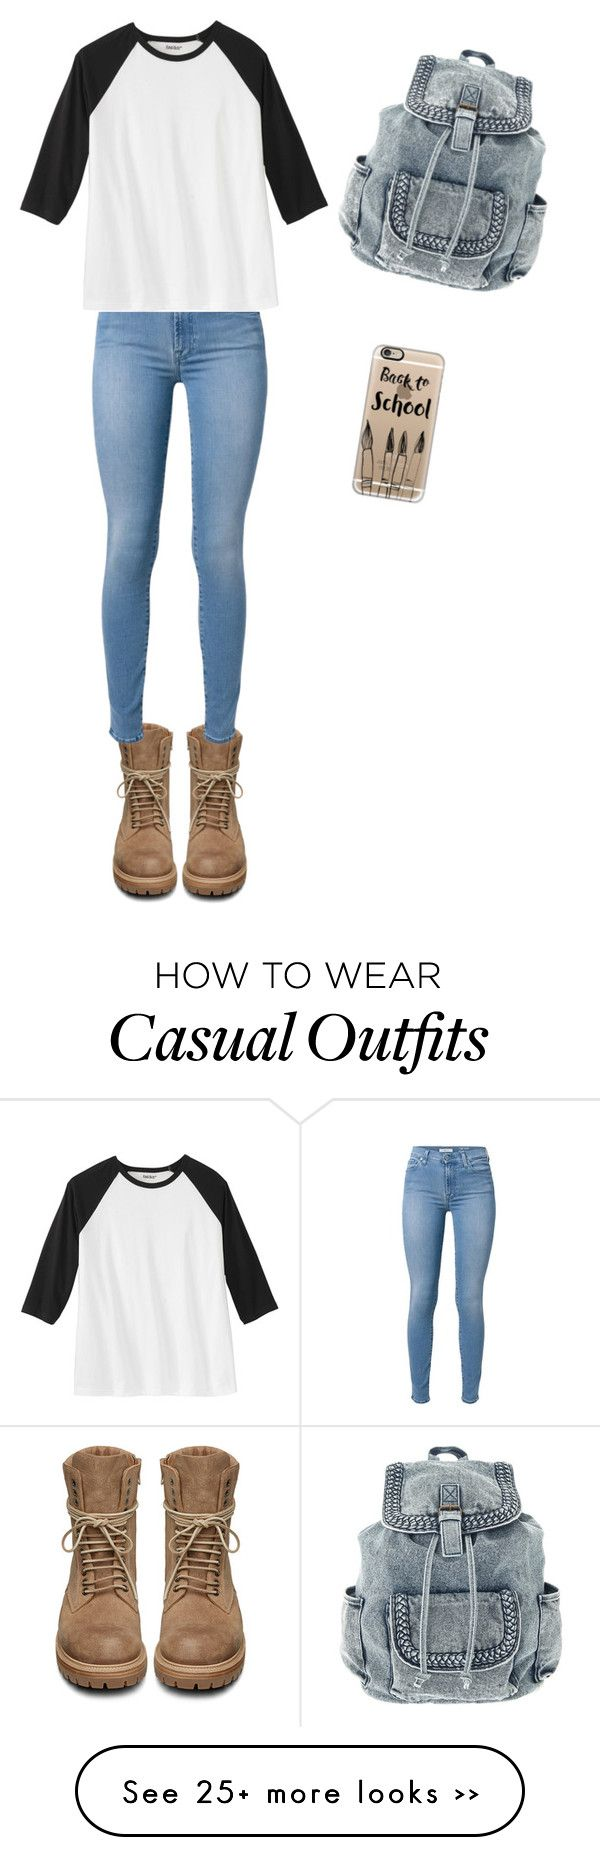 """Casual school"" by chlofthesclan on Polyvore featuring Rick Owens, 7 For All Mankind and Casetify"